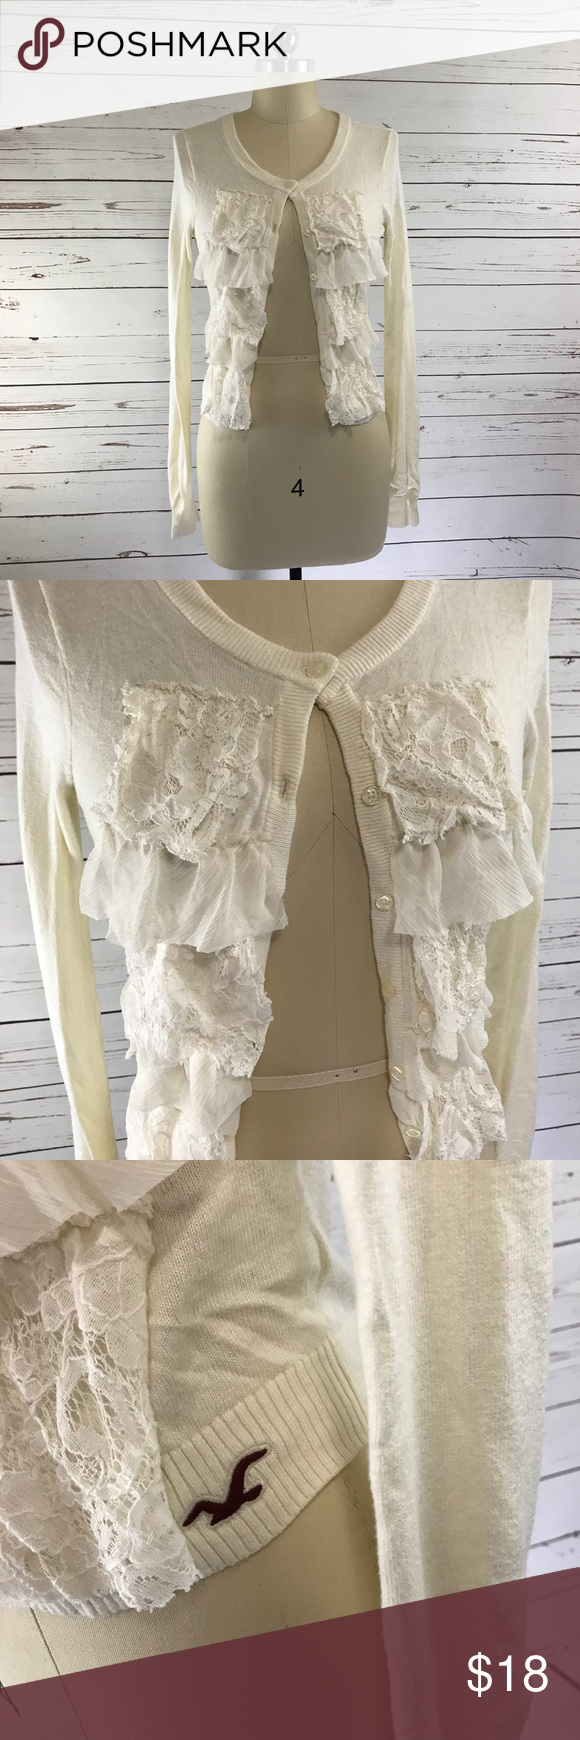 Hollister Ruffle and Lace Cream Cardigan Sz S Hollister cream ...